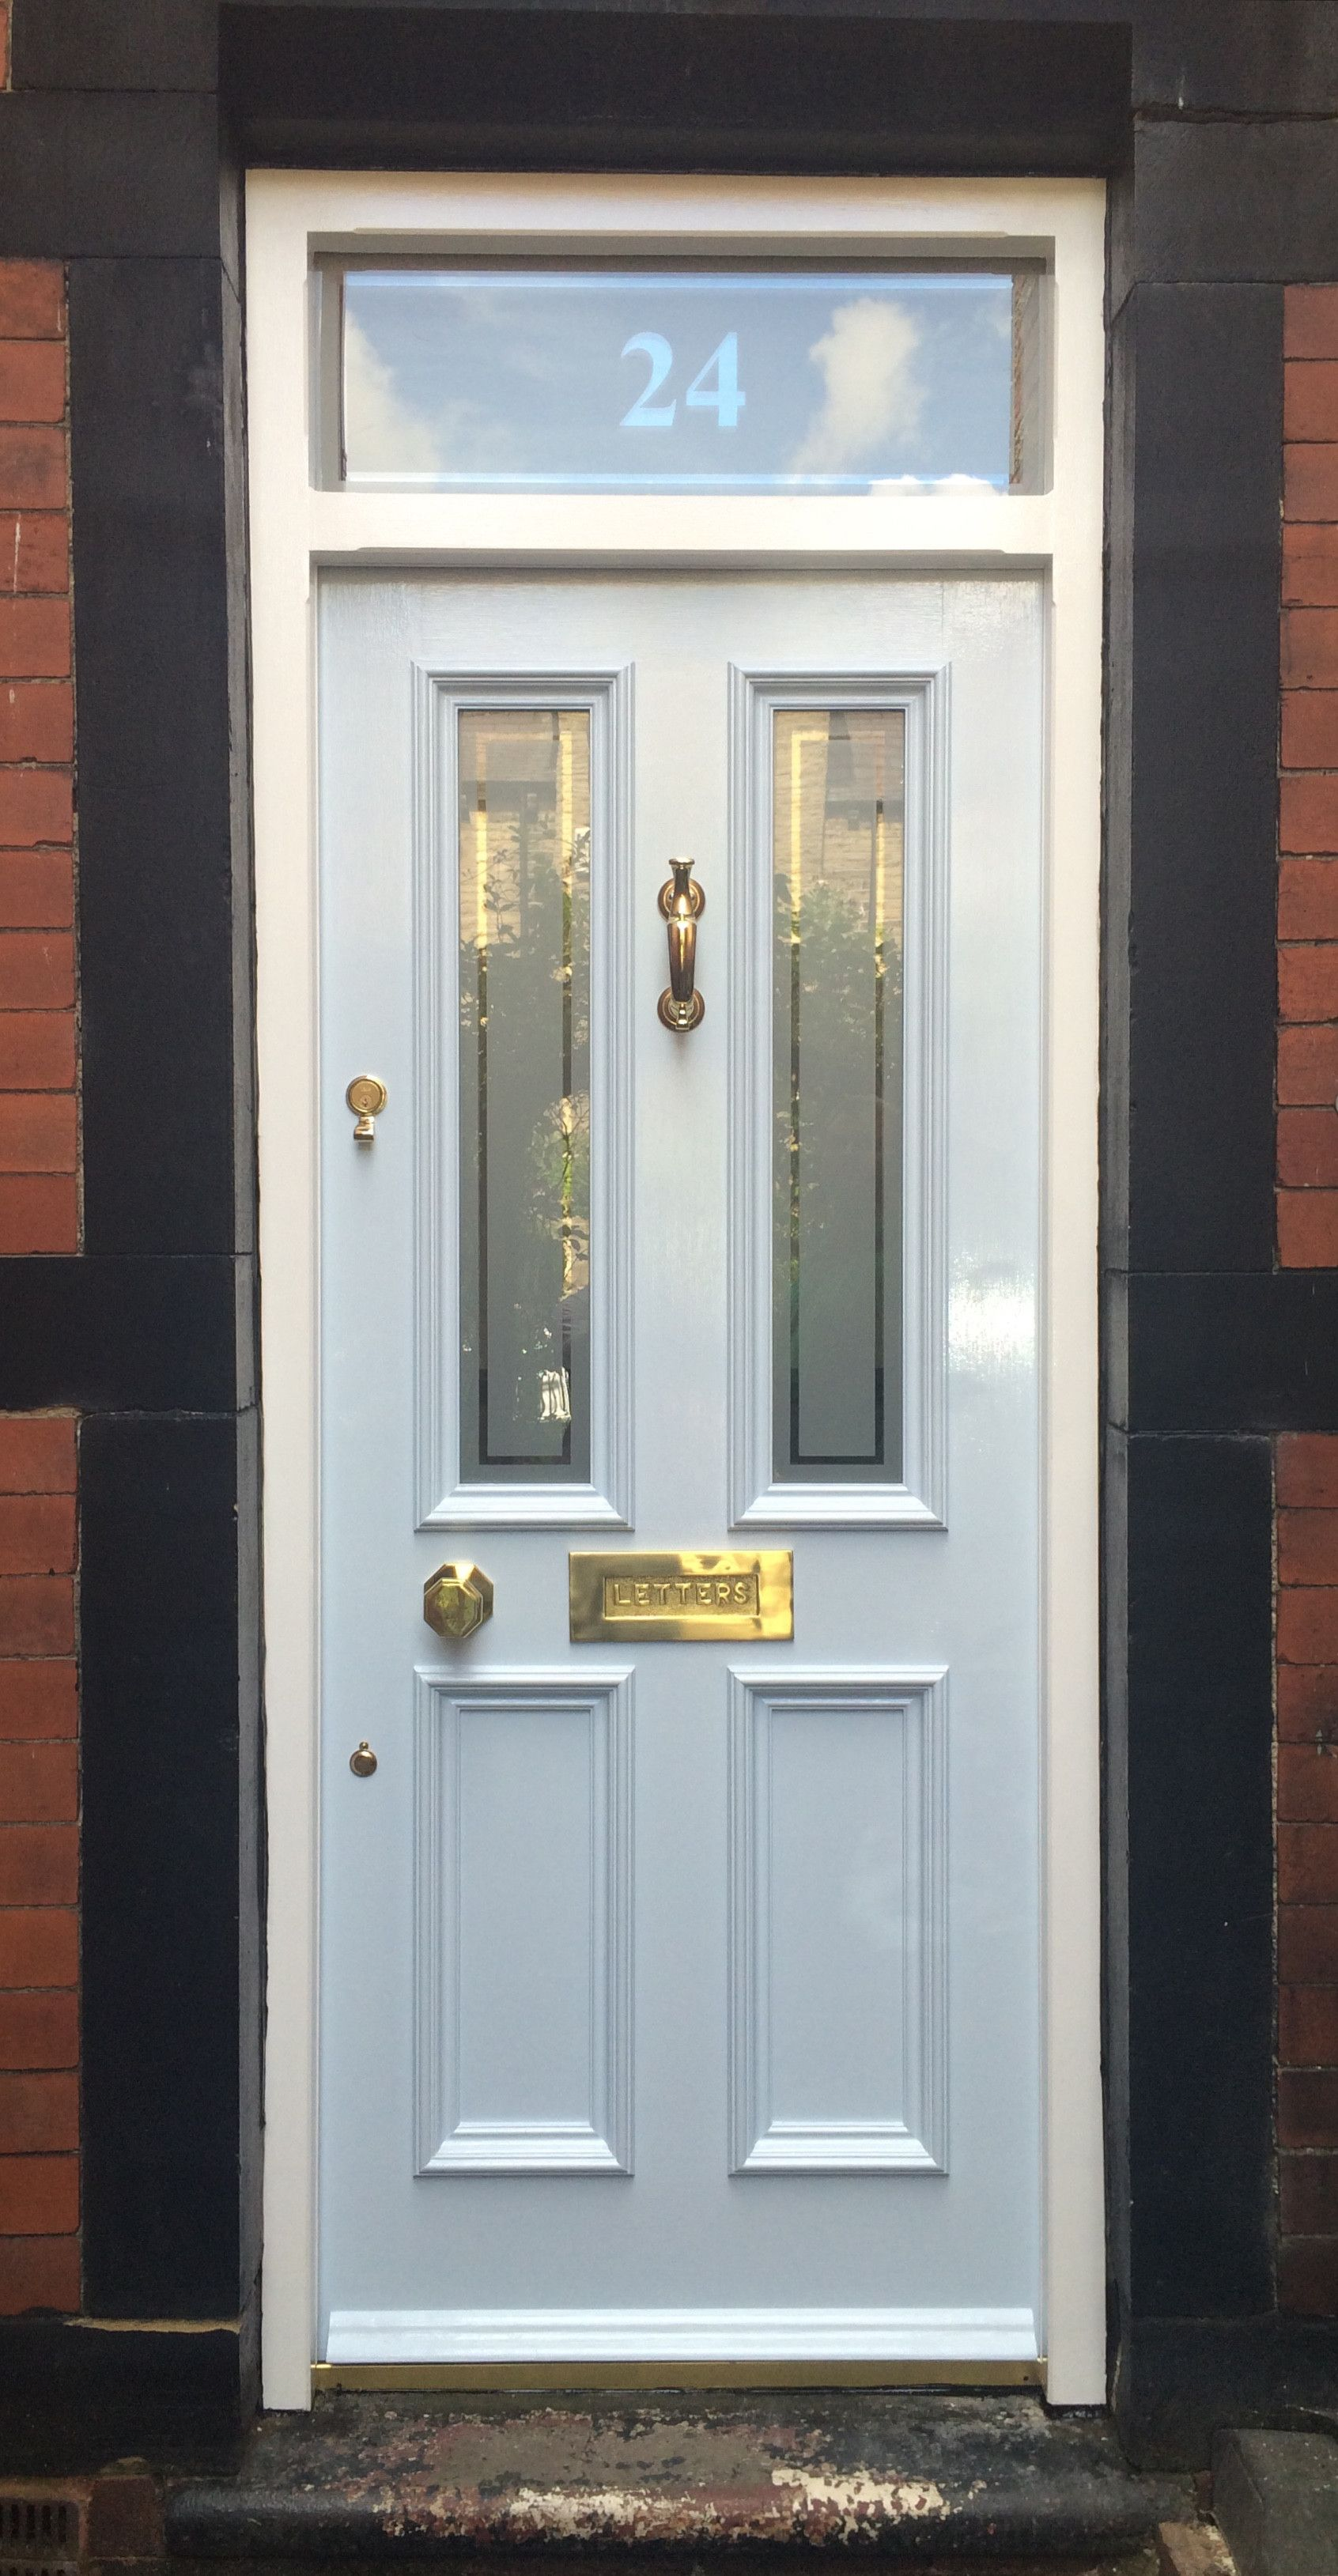 Fanlight frame and grand victorian front door with etched glazing and numbered fanlight in barnsley